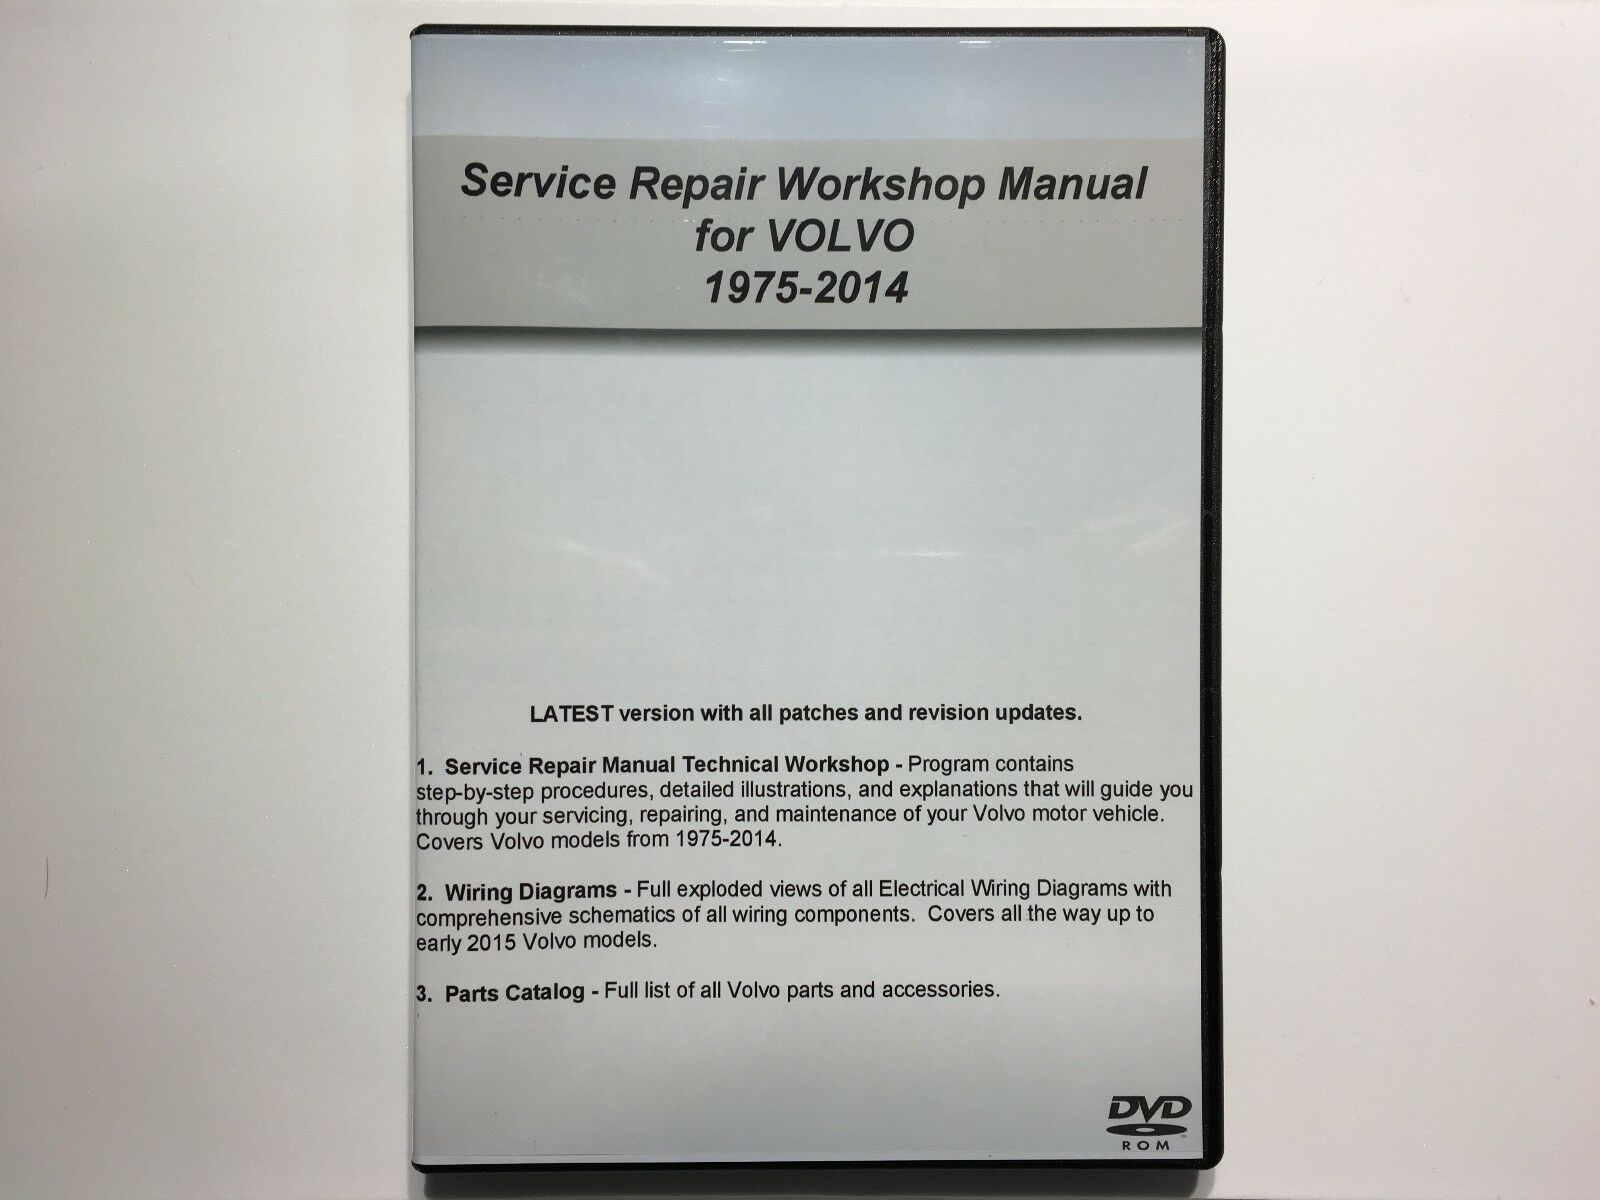 hight resolution of for volvo vida vadis service shop repair manual parts catalog wiring diagrams for sale